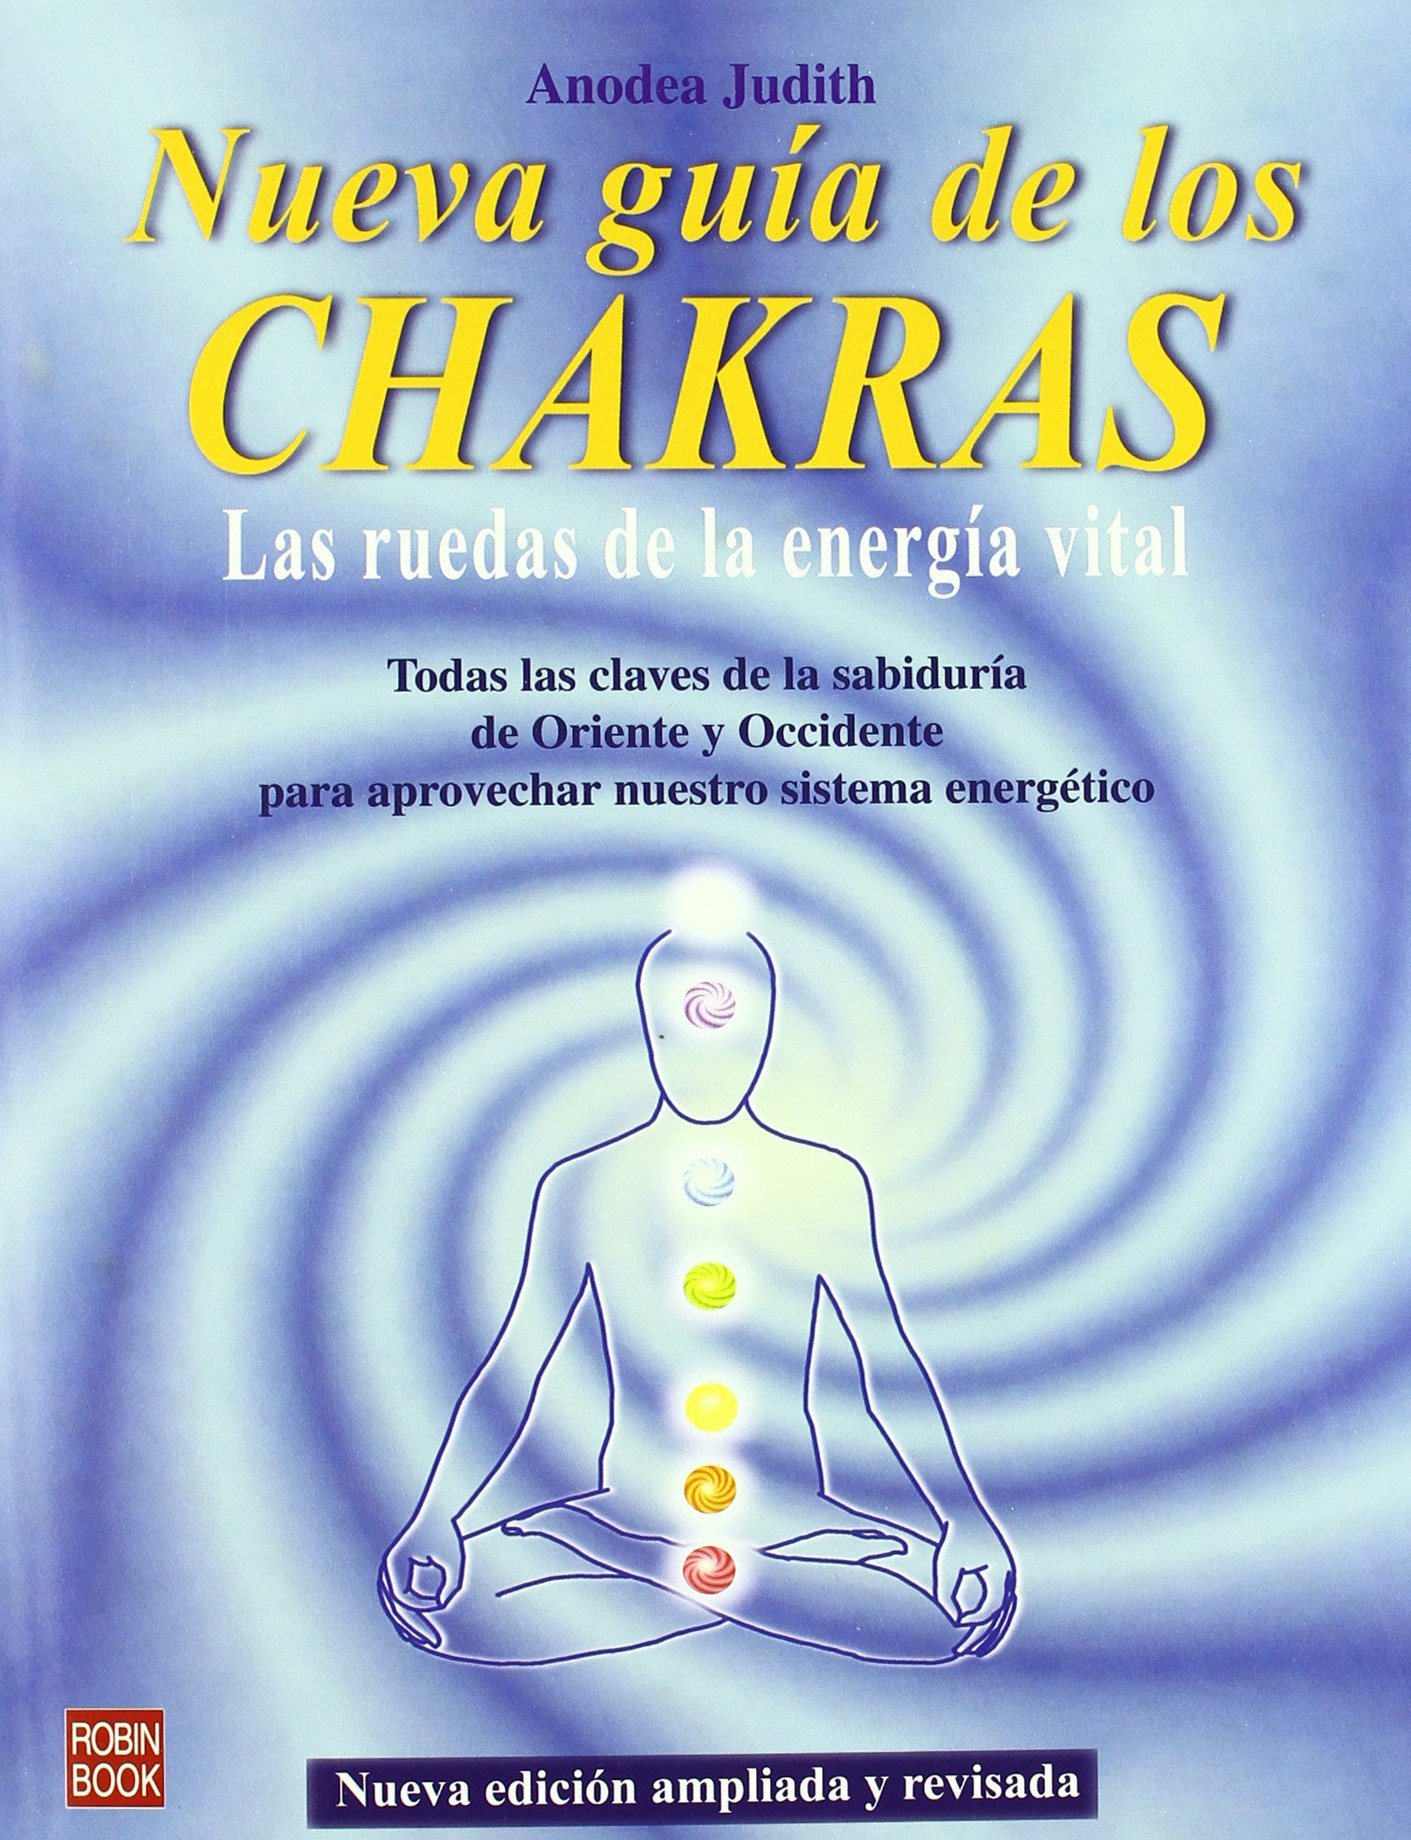 La Nueva Guia De Los Chakras/ The New Guide Of Chakras (Spanish Edition) (Spanish) Paperback – October 30, 2007